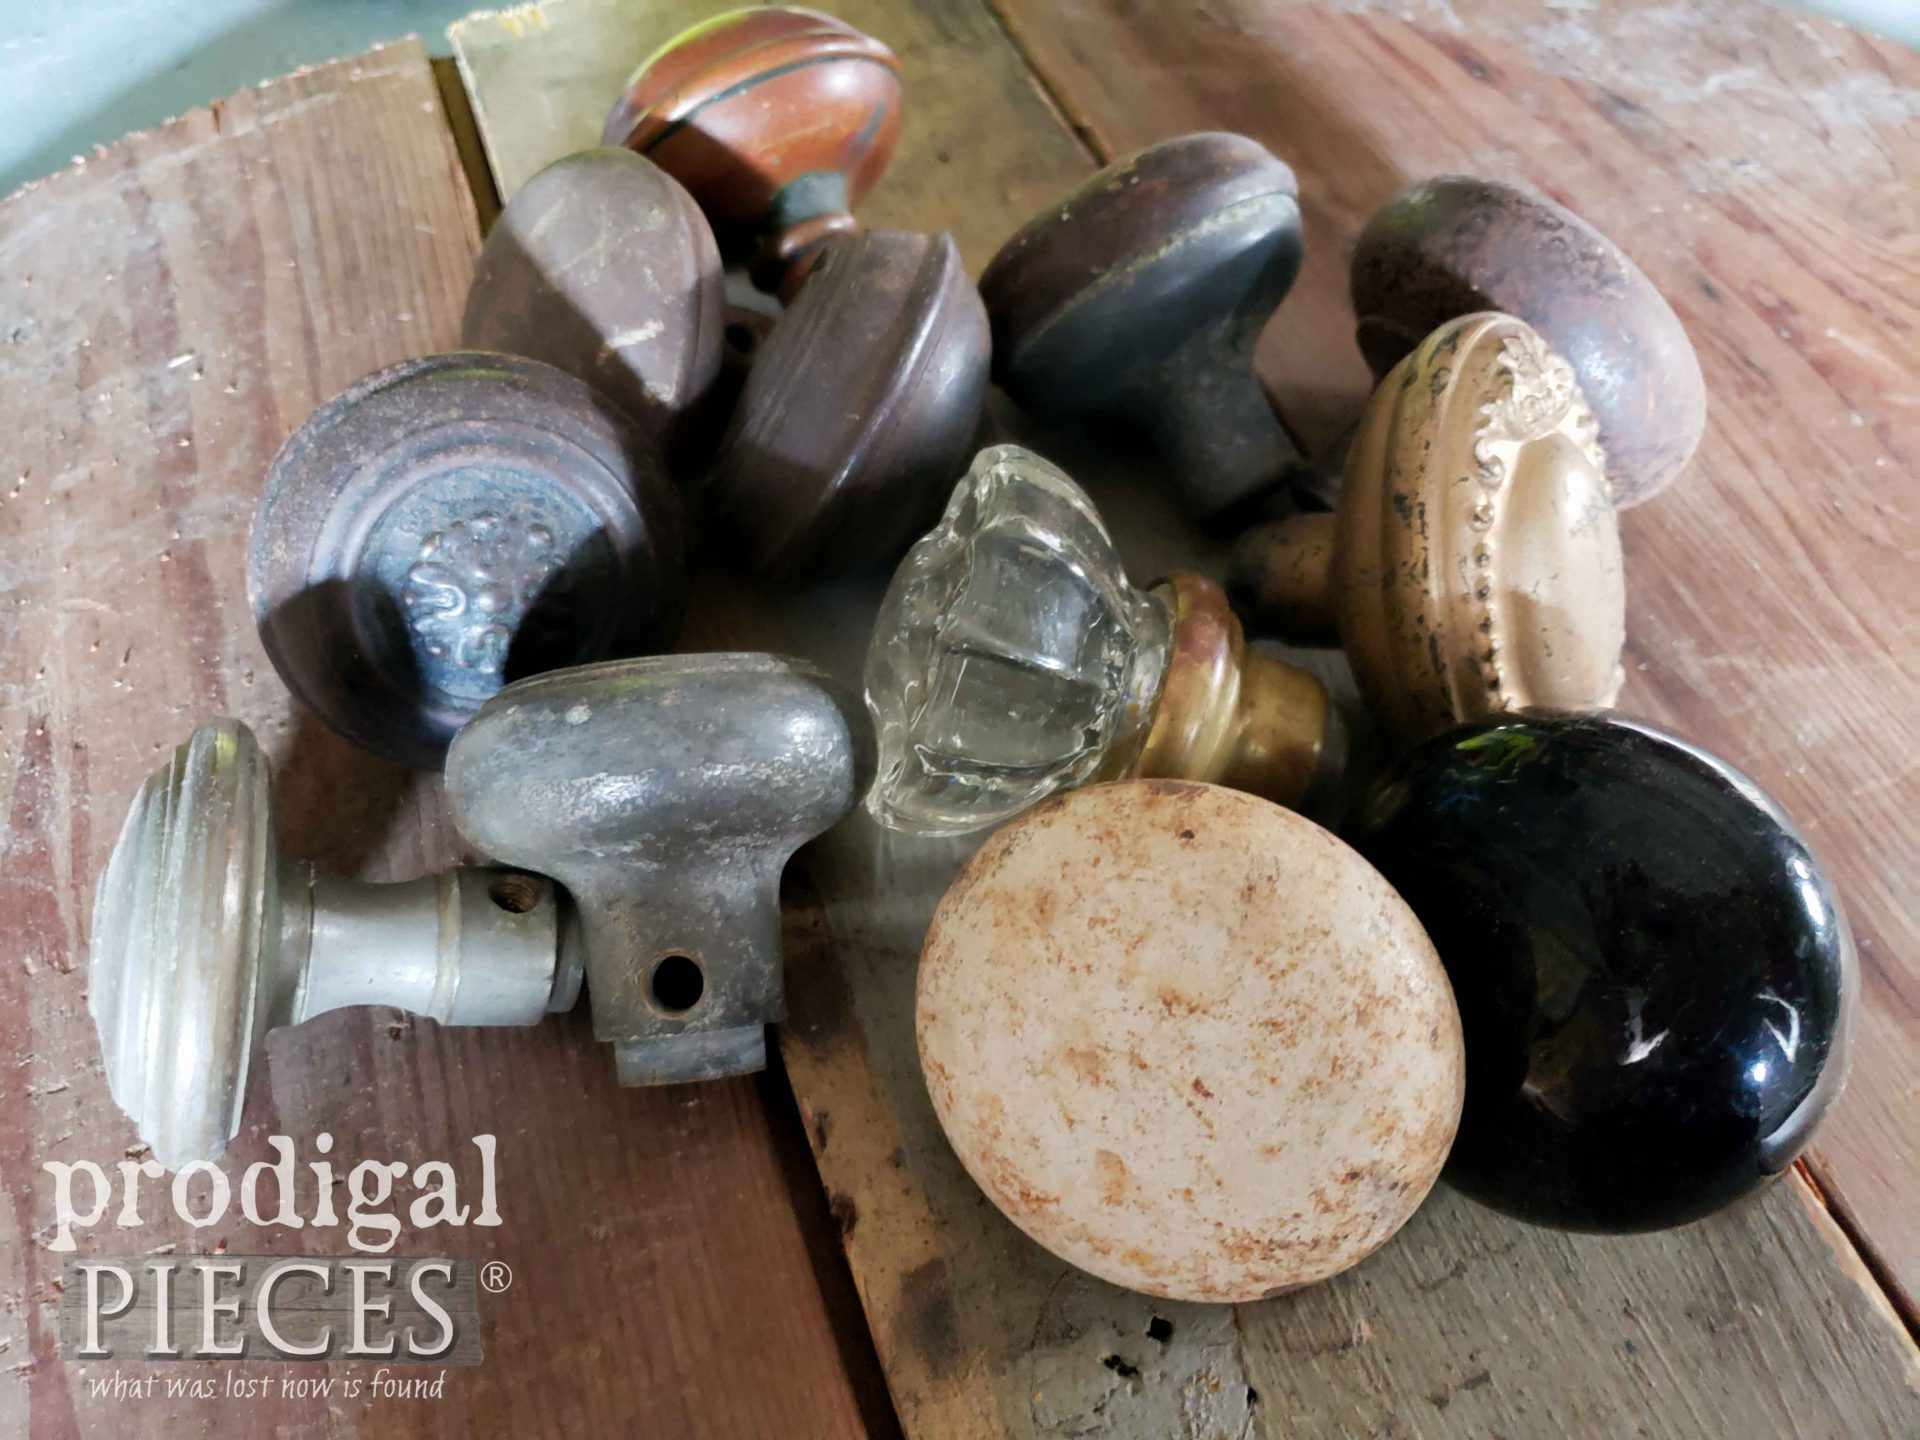 Pile of Mixed Lot of Antique Door Knobs | prodigalpieces.com